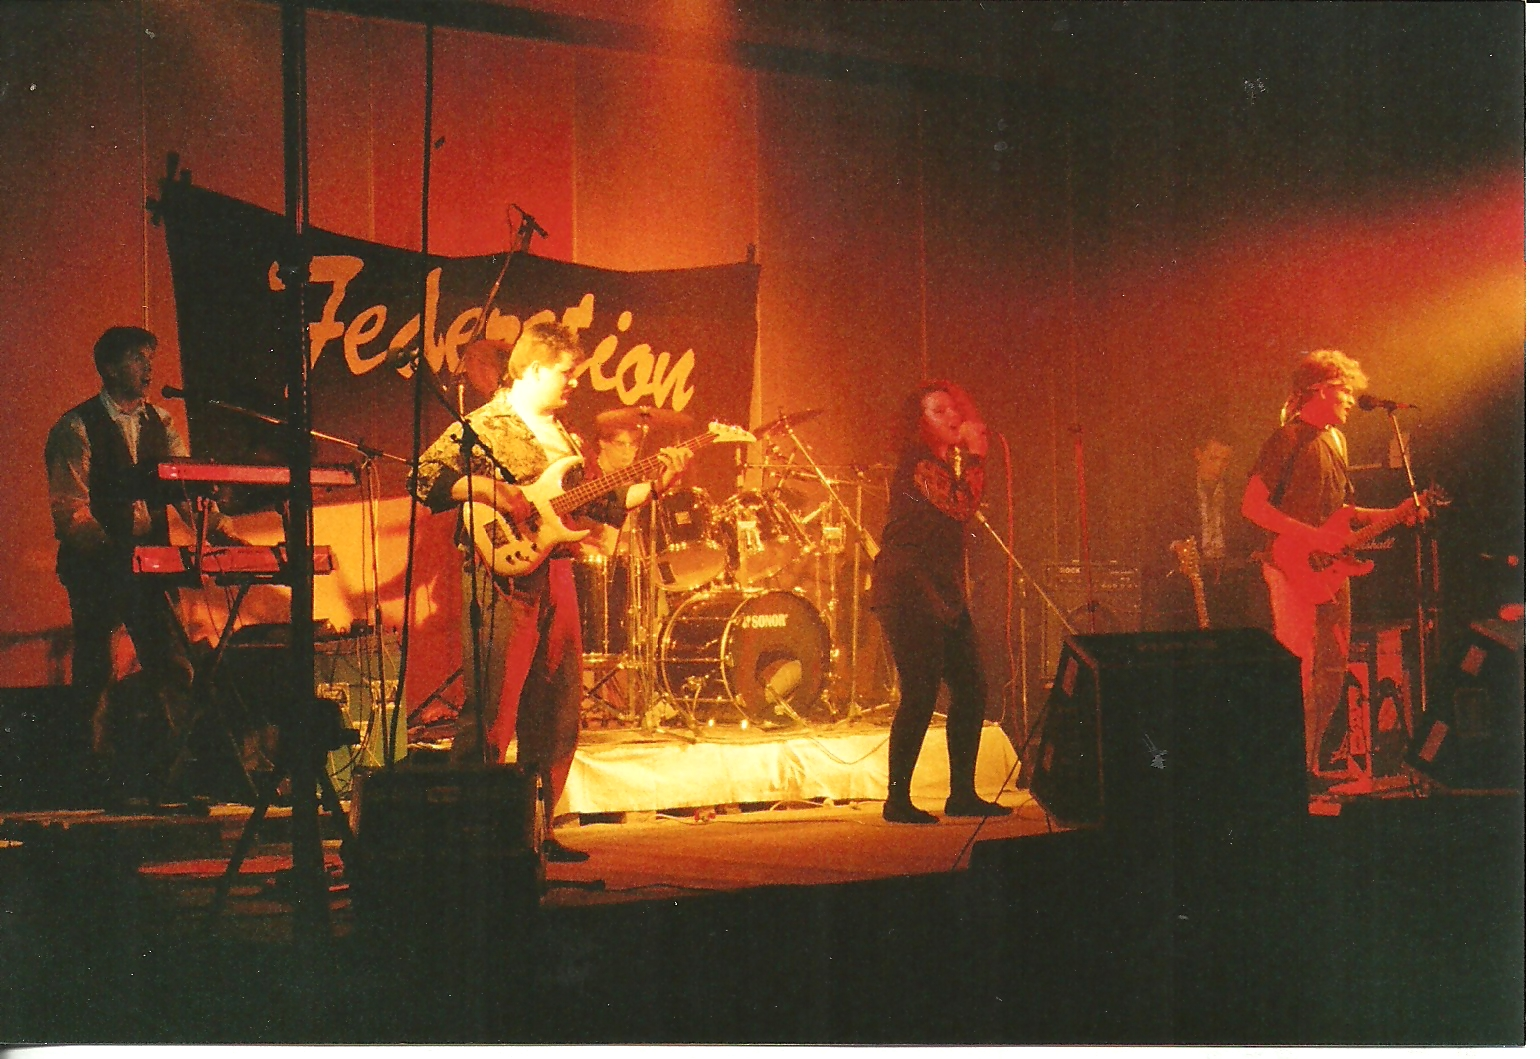 Federation - The Band